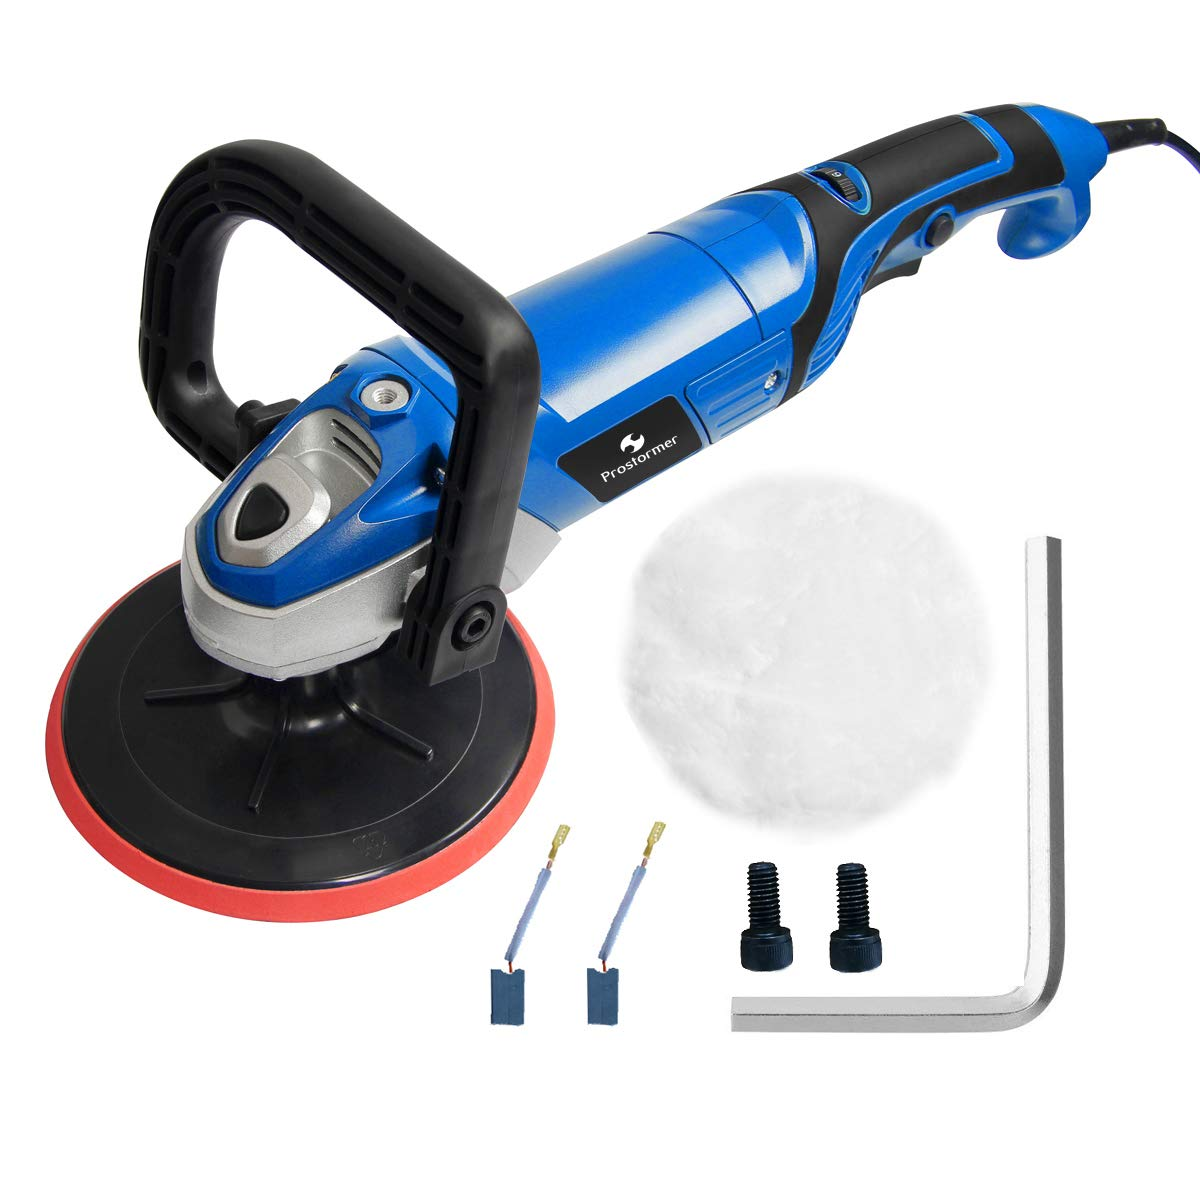 """Prostormer 7"""" Electric 6 Variable Speed Polisher Sander Buffer for Car Auto Polishing, Buffing, Detailing"""